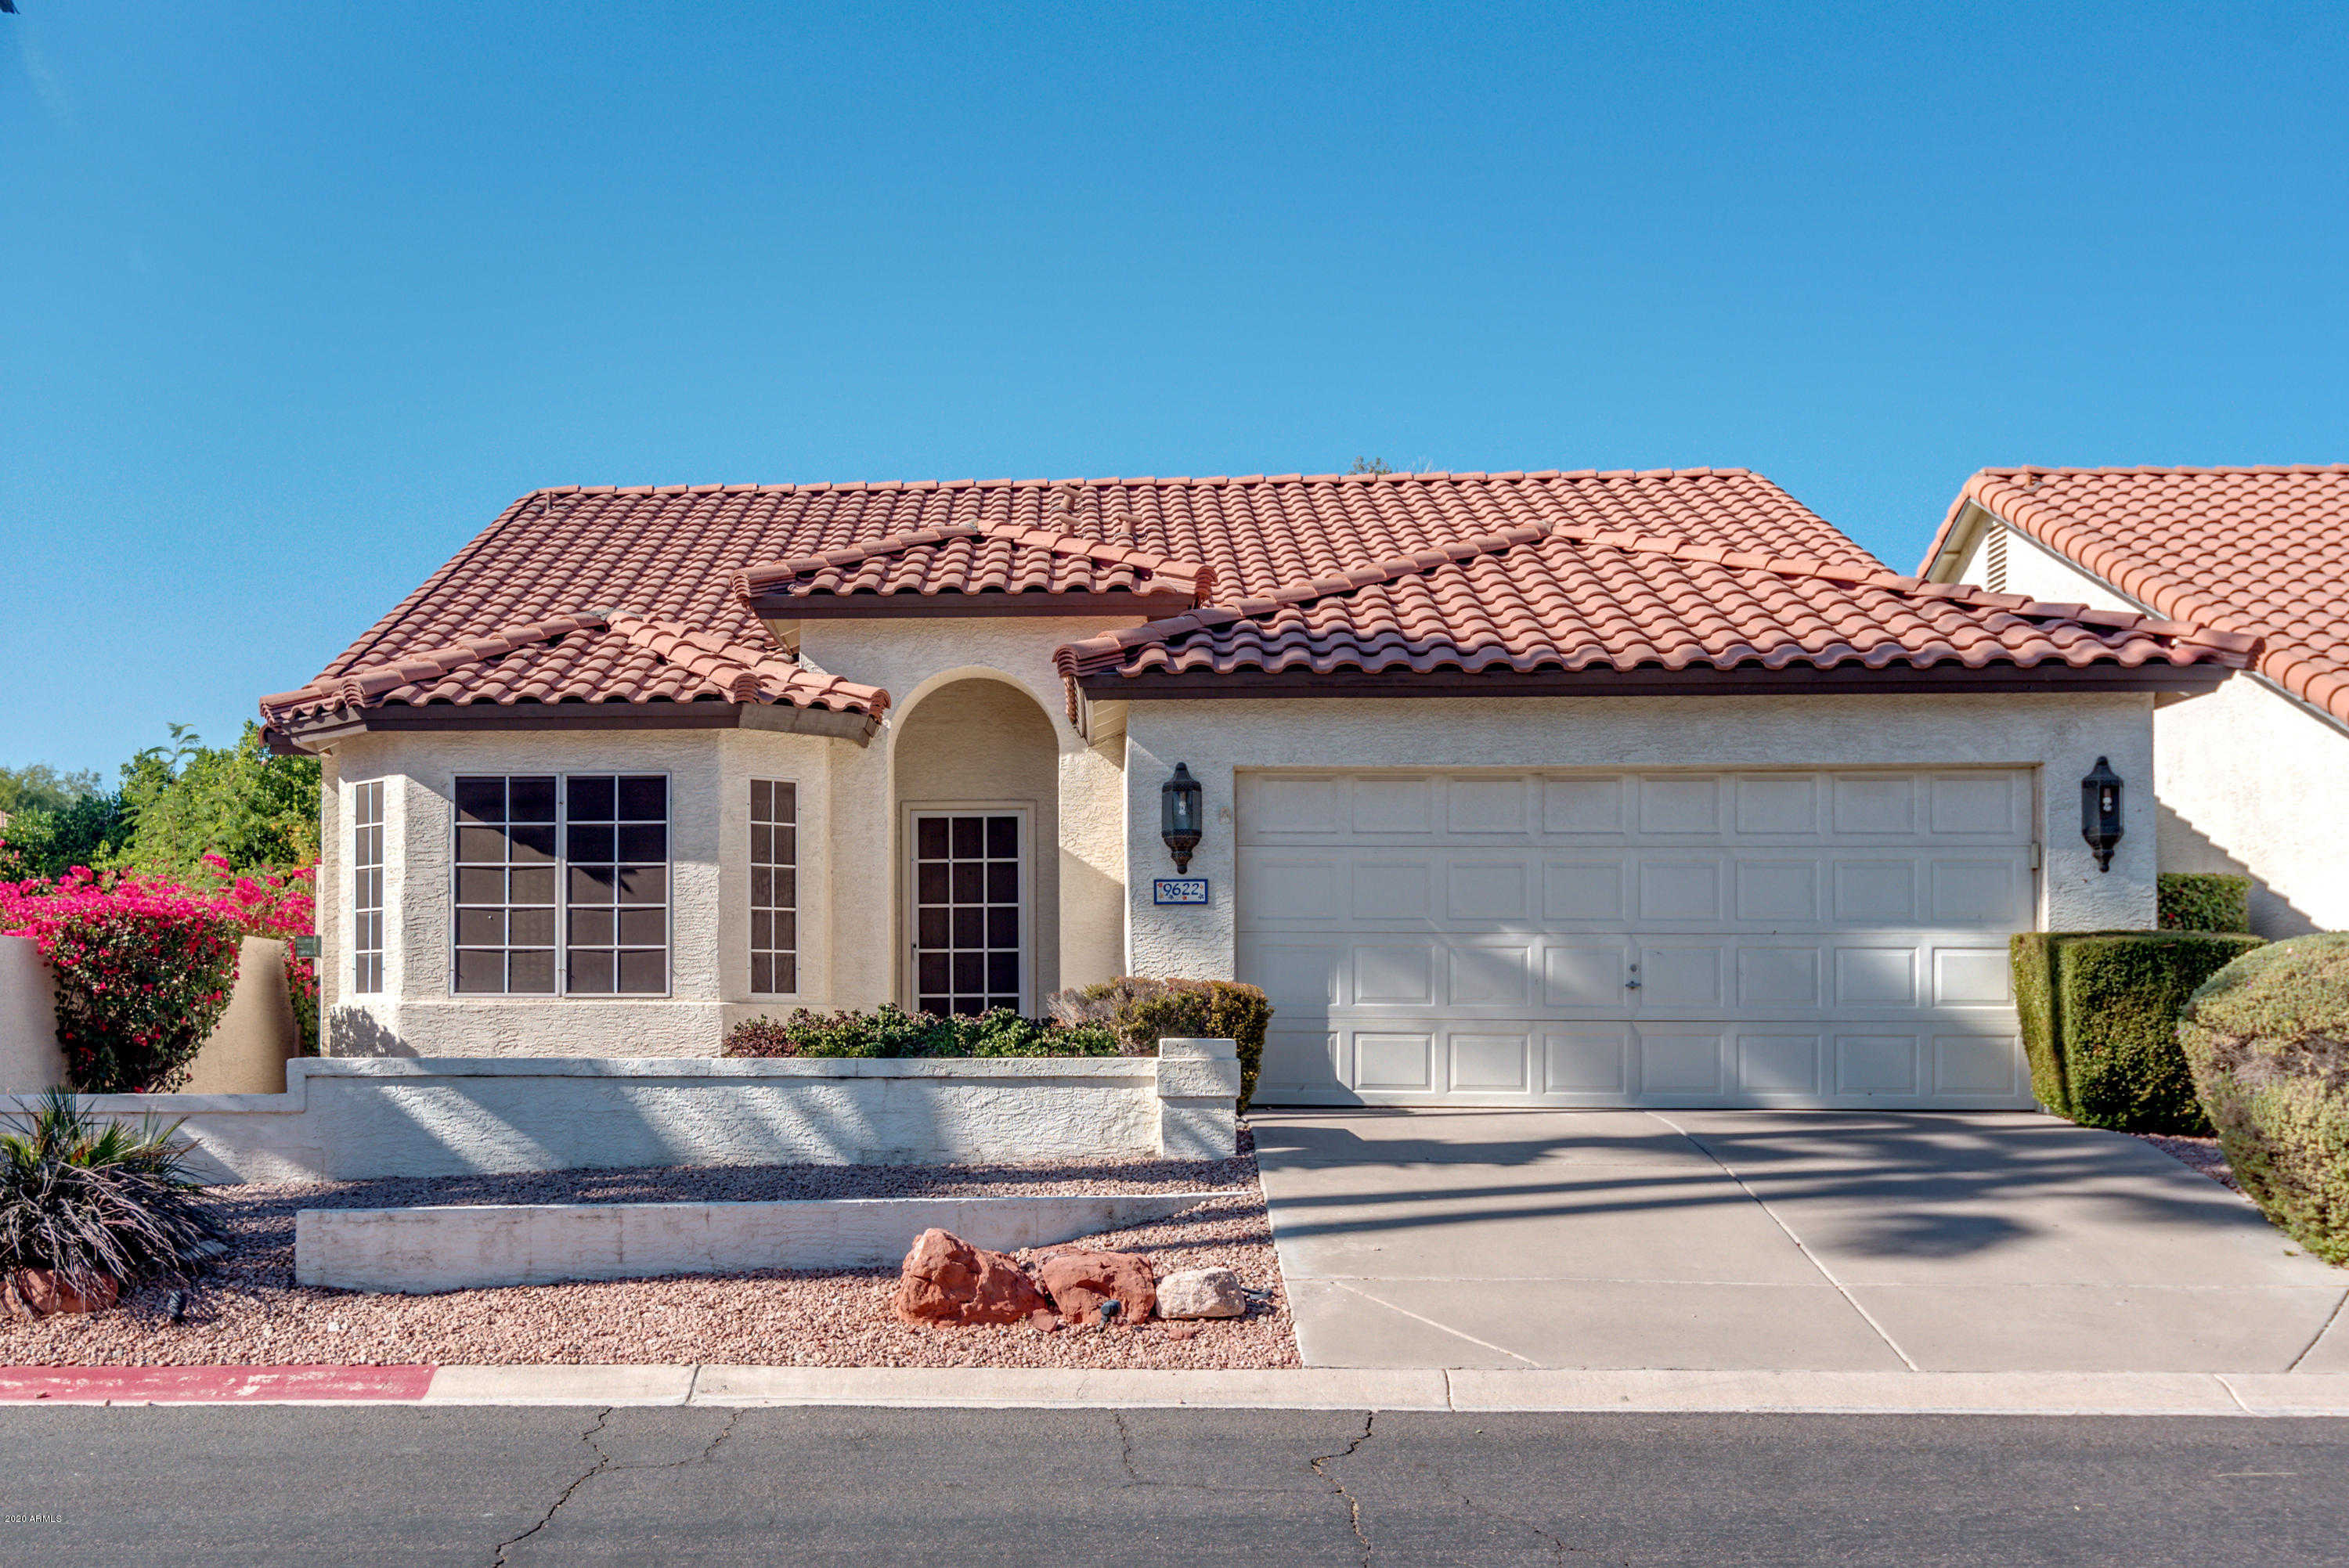 $385,000 - 3Br/2Ba - Home for Sale in Pointe South Mountain, Phoenix